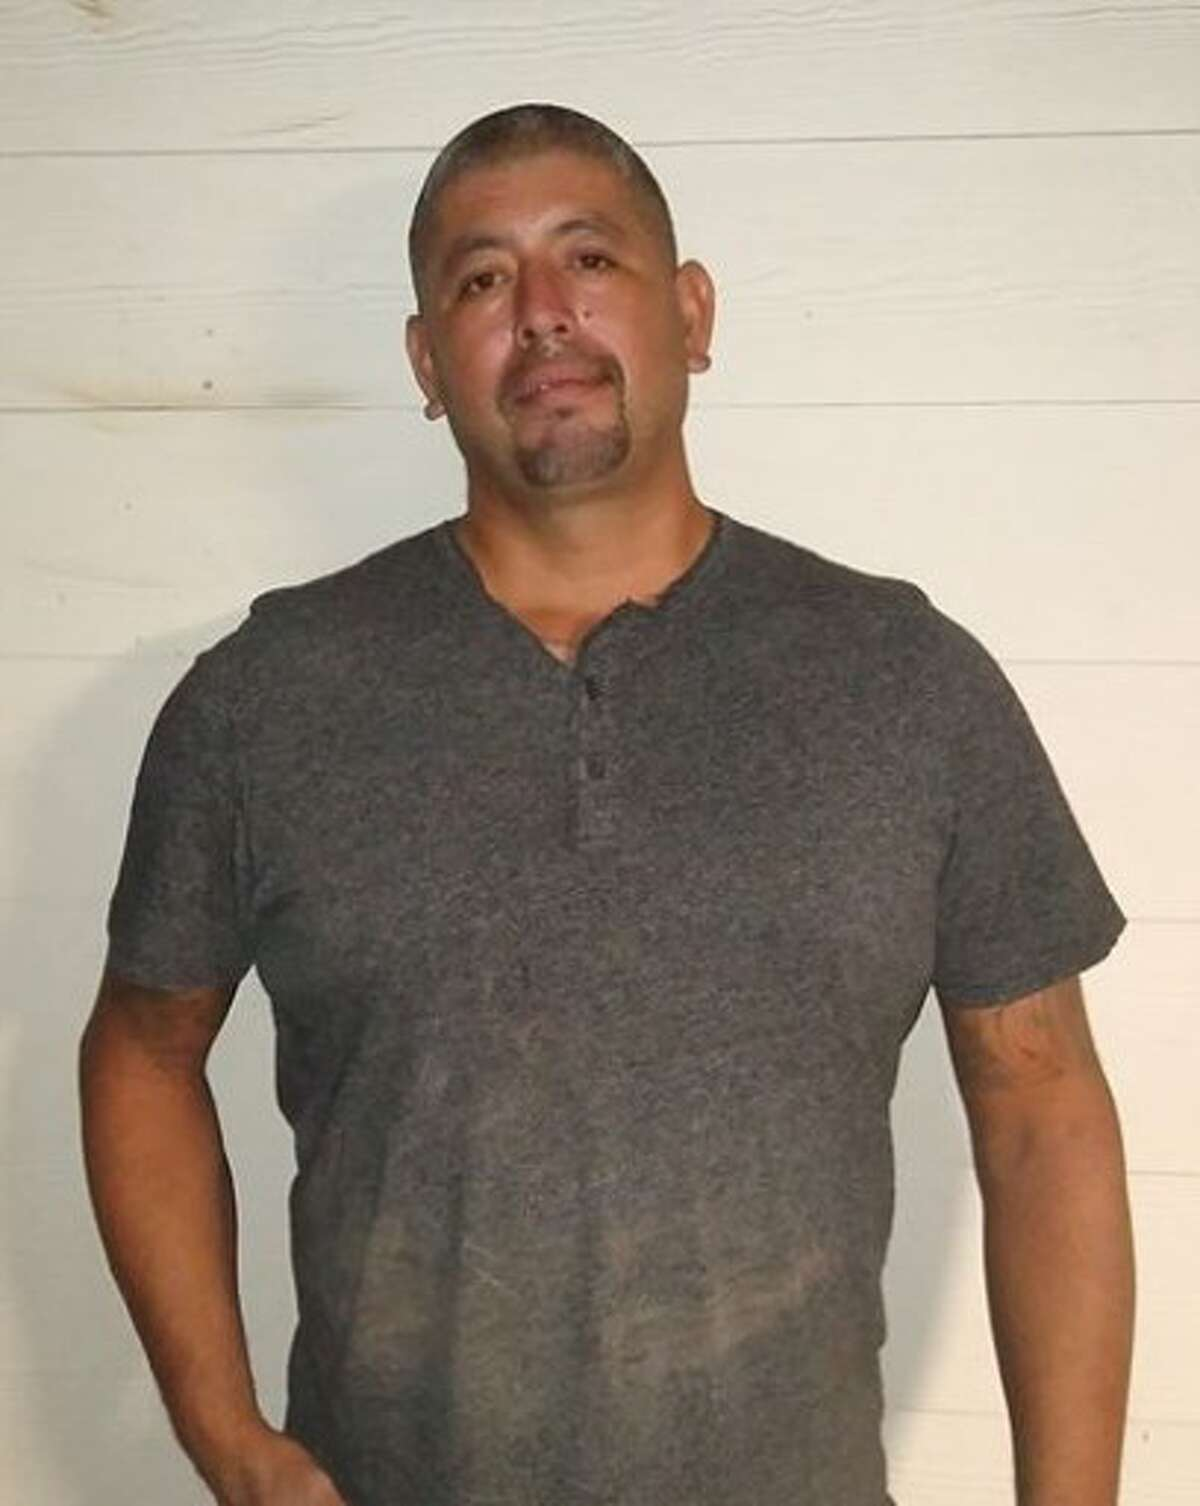 San Antonio police are asking the public for help in locating Andrew Munoz after a woman was found shot at a South Side Subway last week.